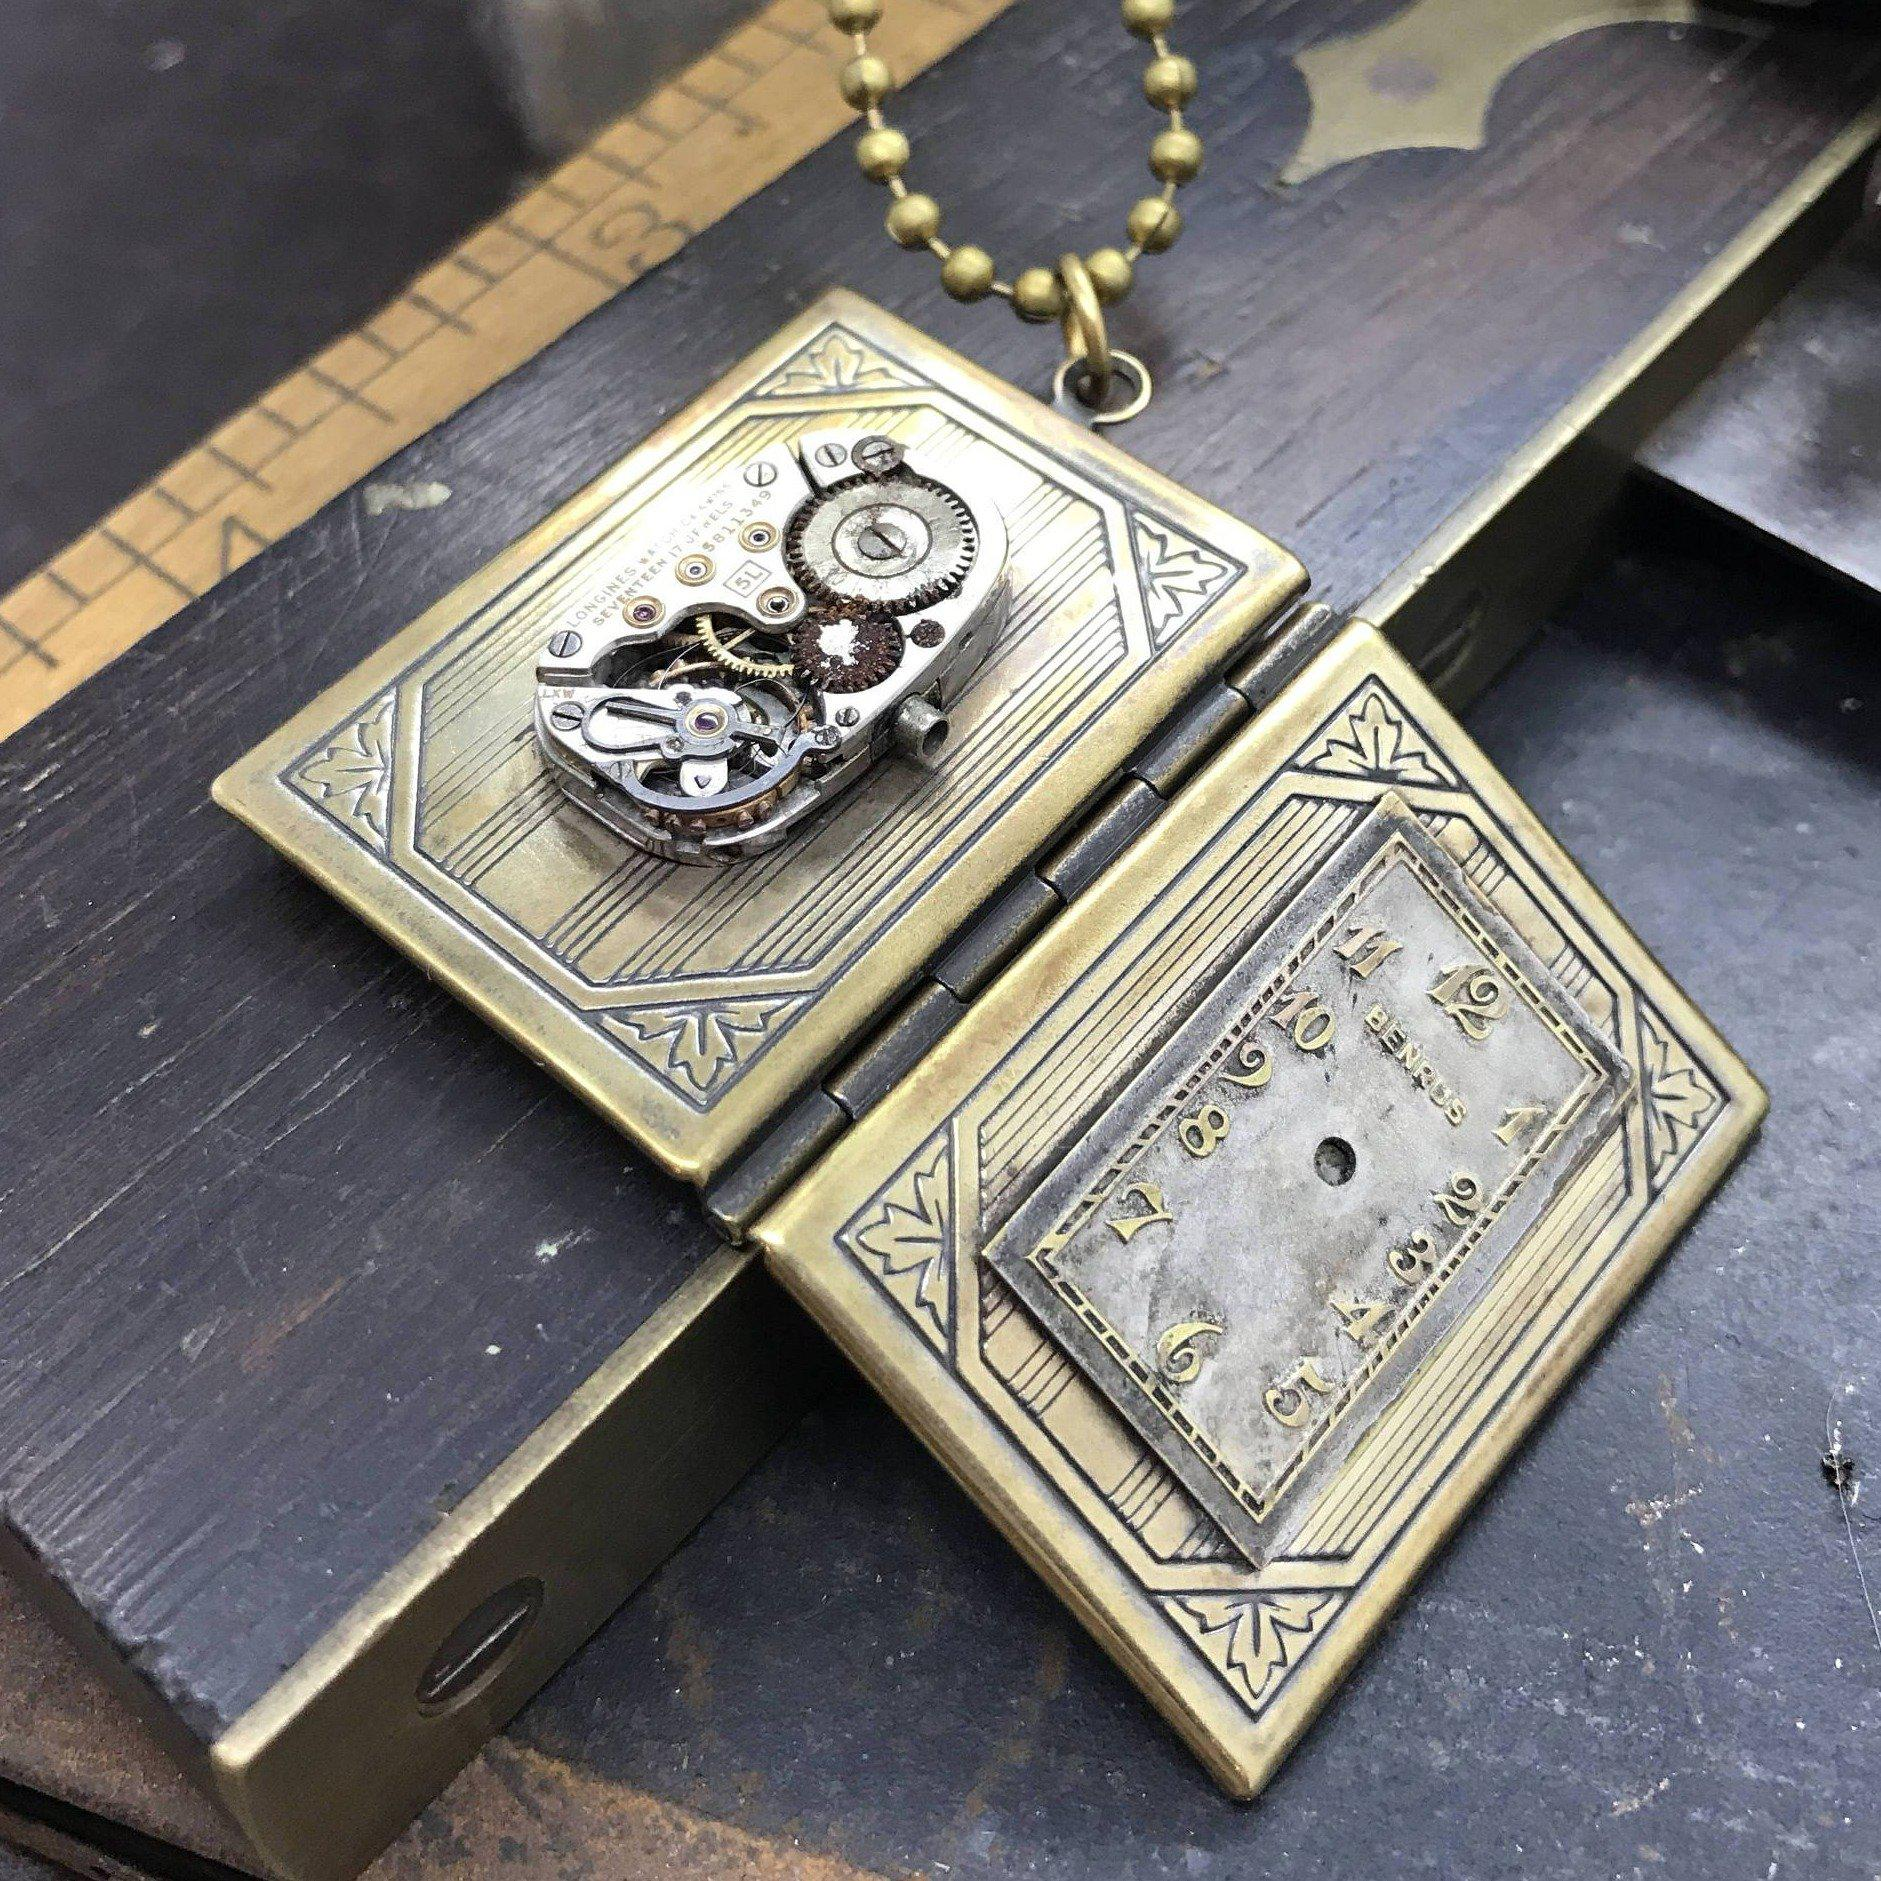 One of a kind steampunk inspired book locket necklace the one of a kind steampunk inspired book locket necklace aloadofball Images